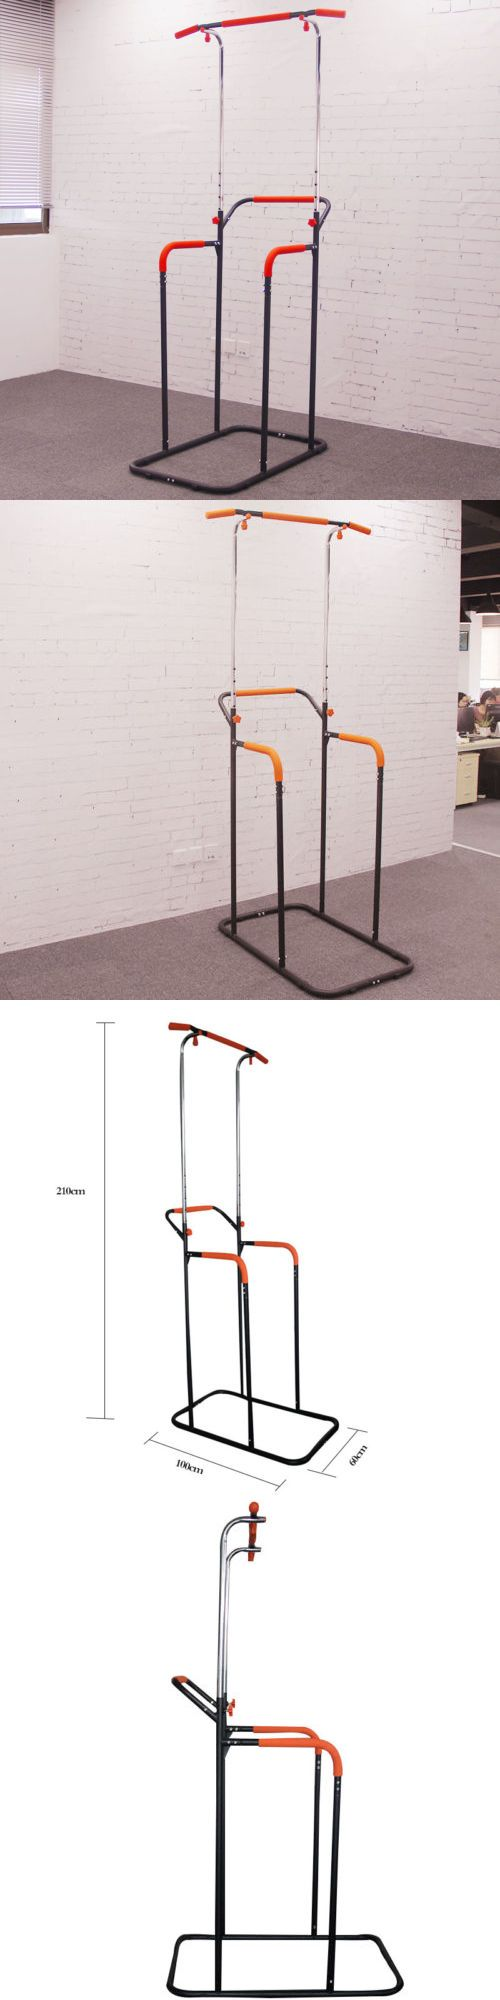 Pull Up Bars 179816: Dip Station Chin Up Tower Rack Pull Up Weight Stand Bar Raise Workout Gym Tools -> BUY IT NOW ONLY: $65.55 on eBay!